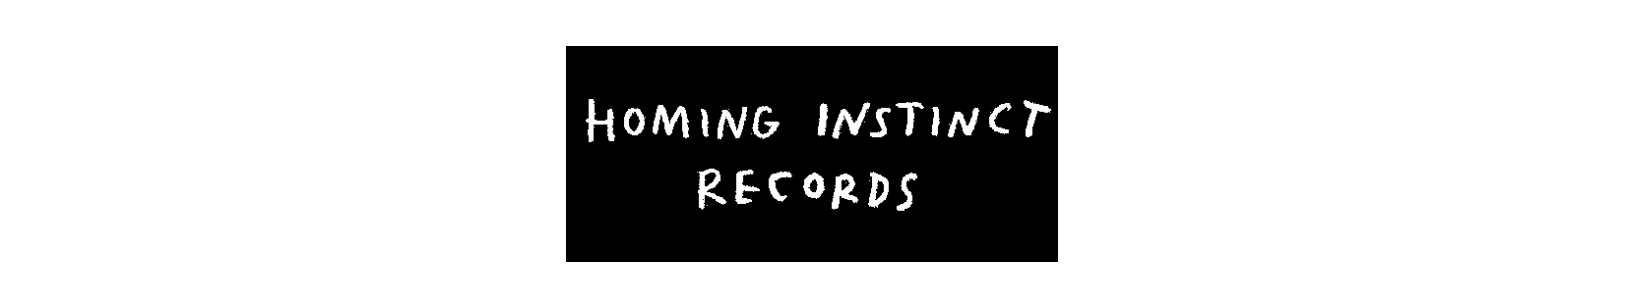 Homing Instinct Records